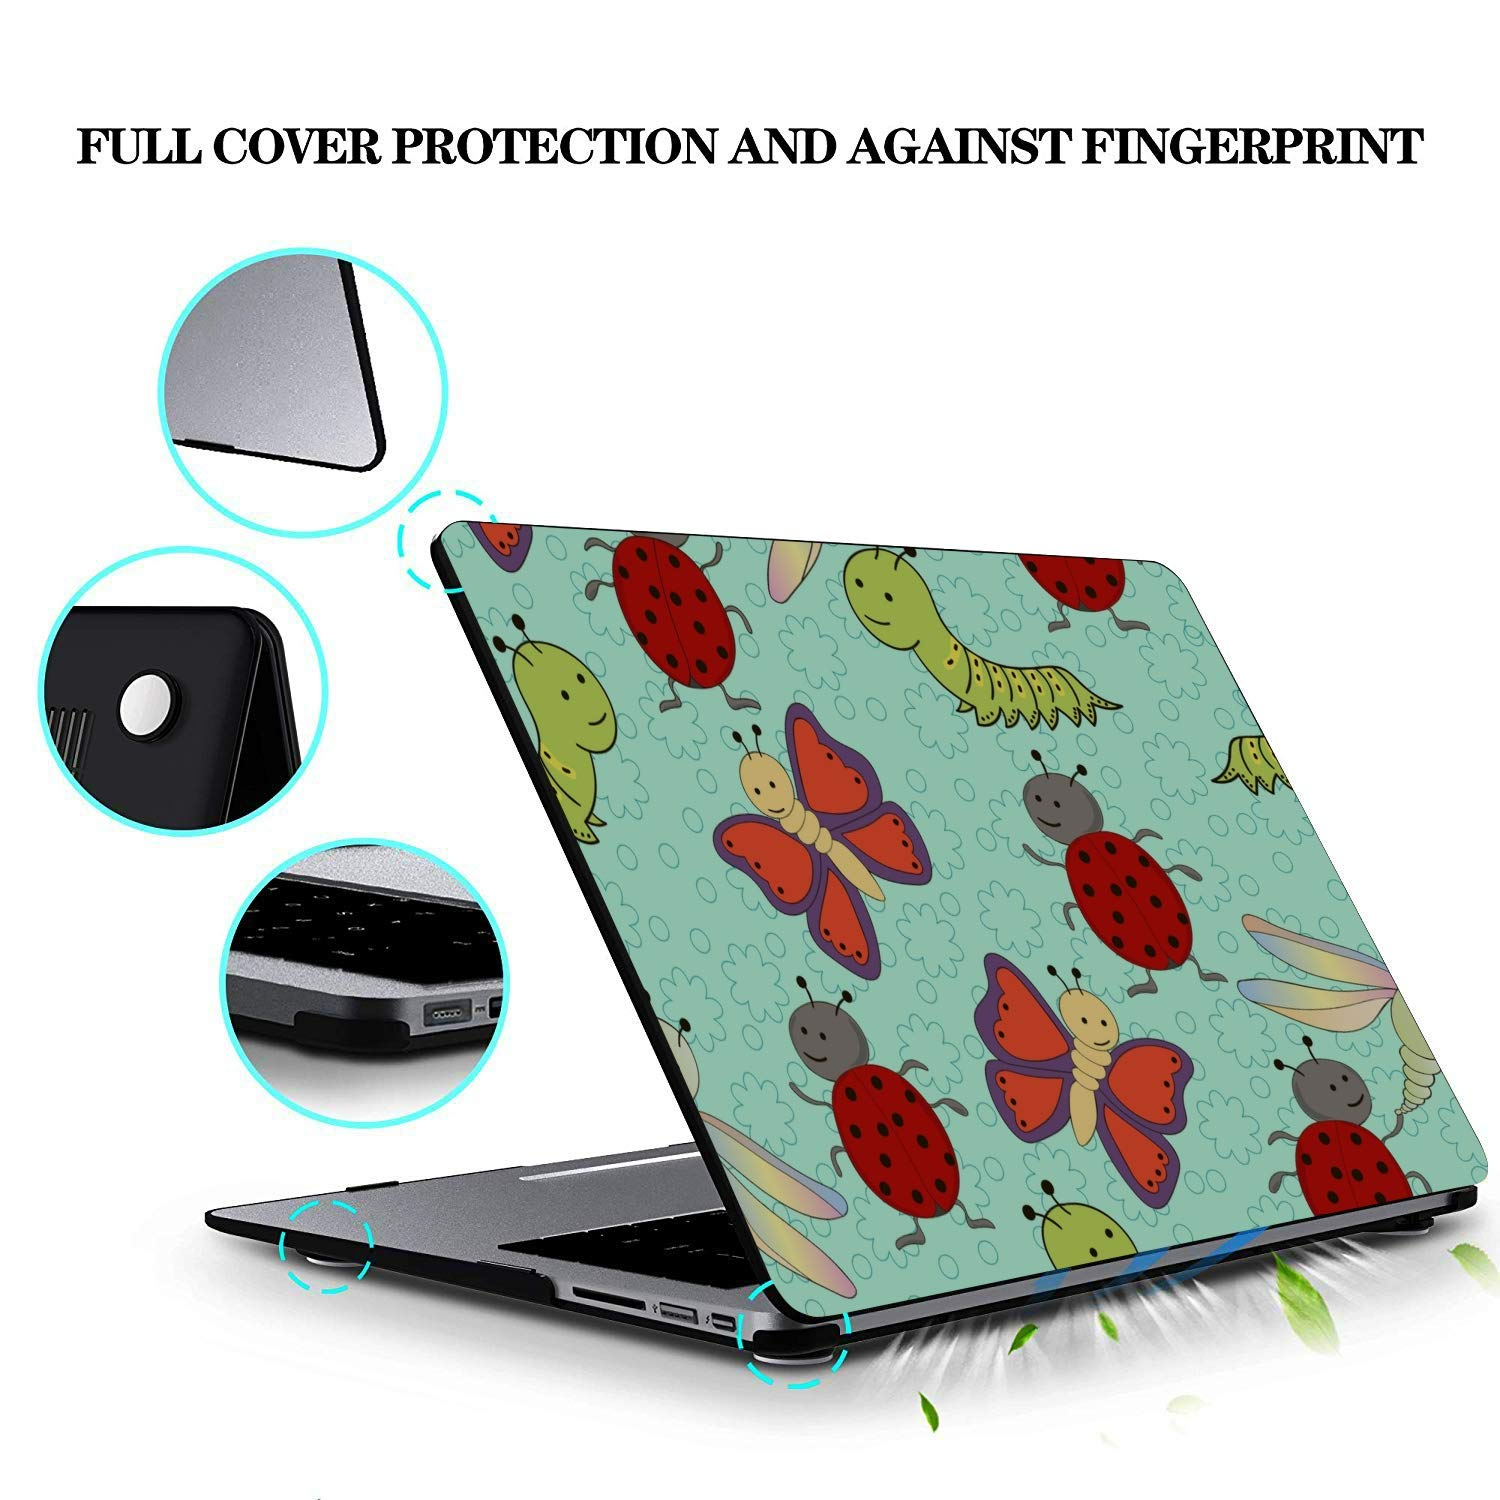 Laptop Covers Small Cute Cartoon Reptile Silkworm Plastic Hard Shell Compatible Mac Air 11 Pro 13 15 Laptop Hard Cases Protection for MacBook 2016-2019 Version